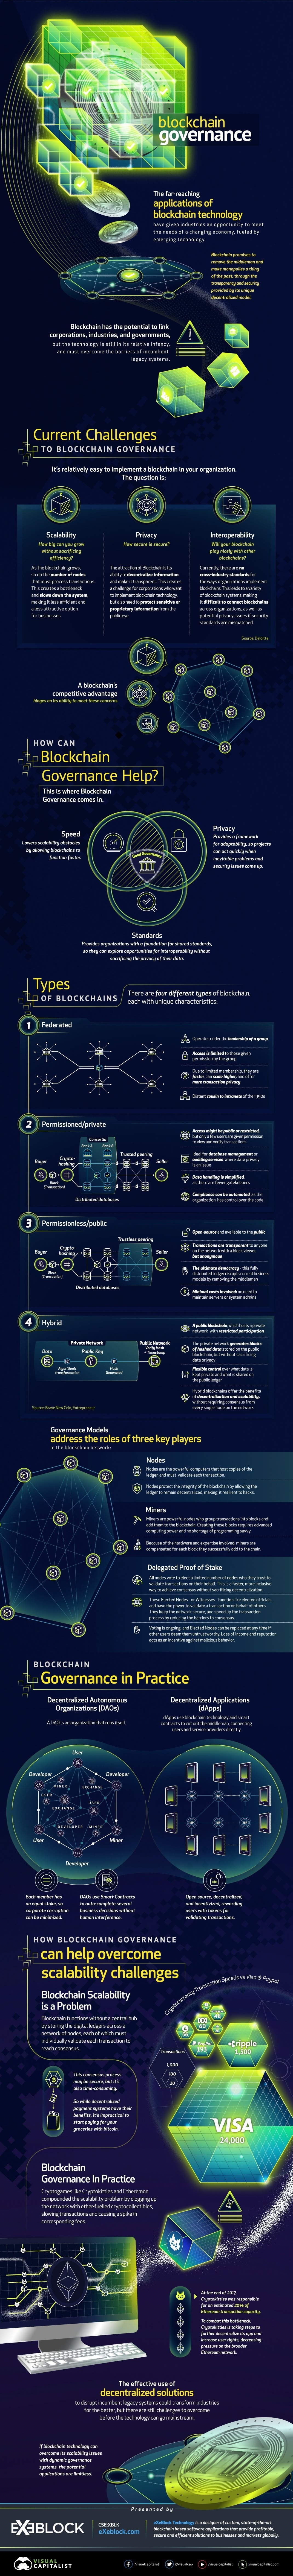 HOW BOUNDARIES CAN HELP THE BLOCKCHAIN TO SCALE #INFOGRAPHIC